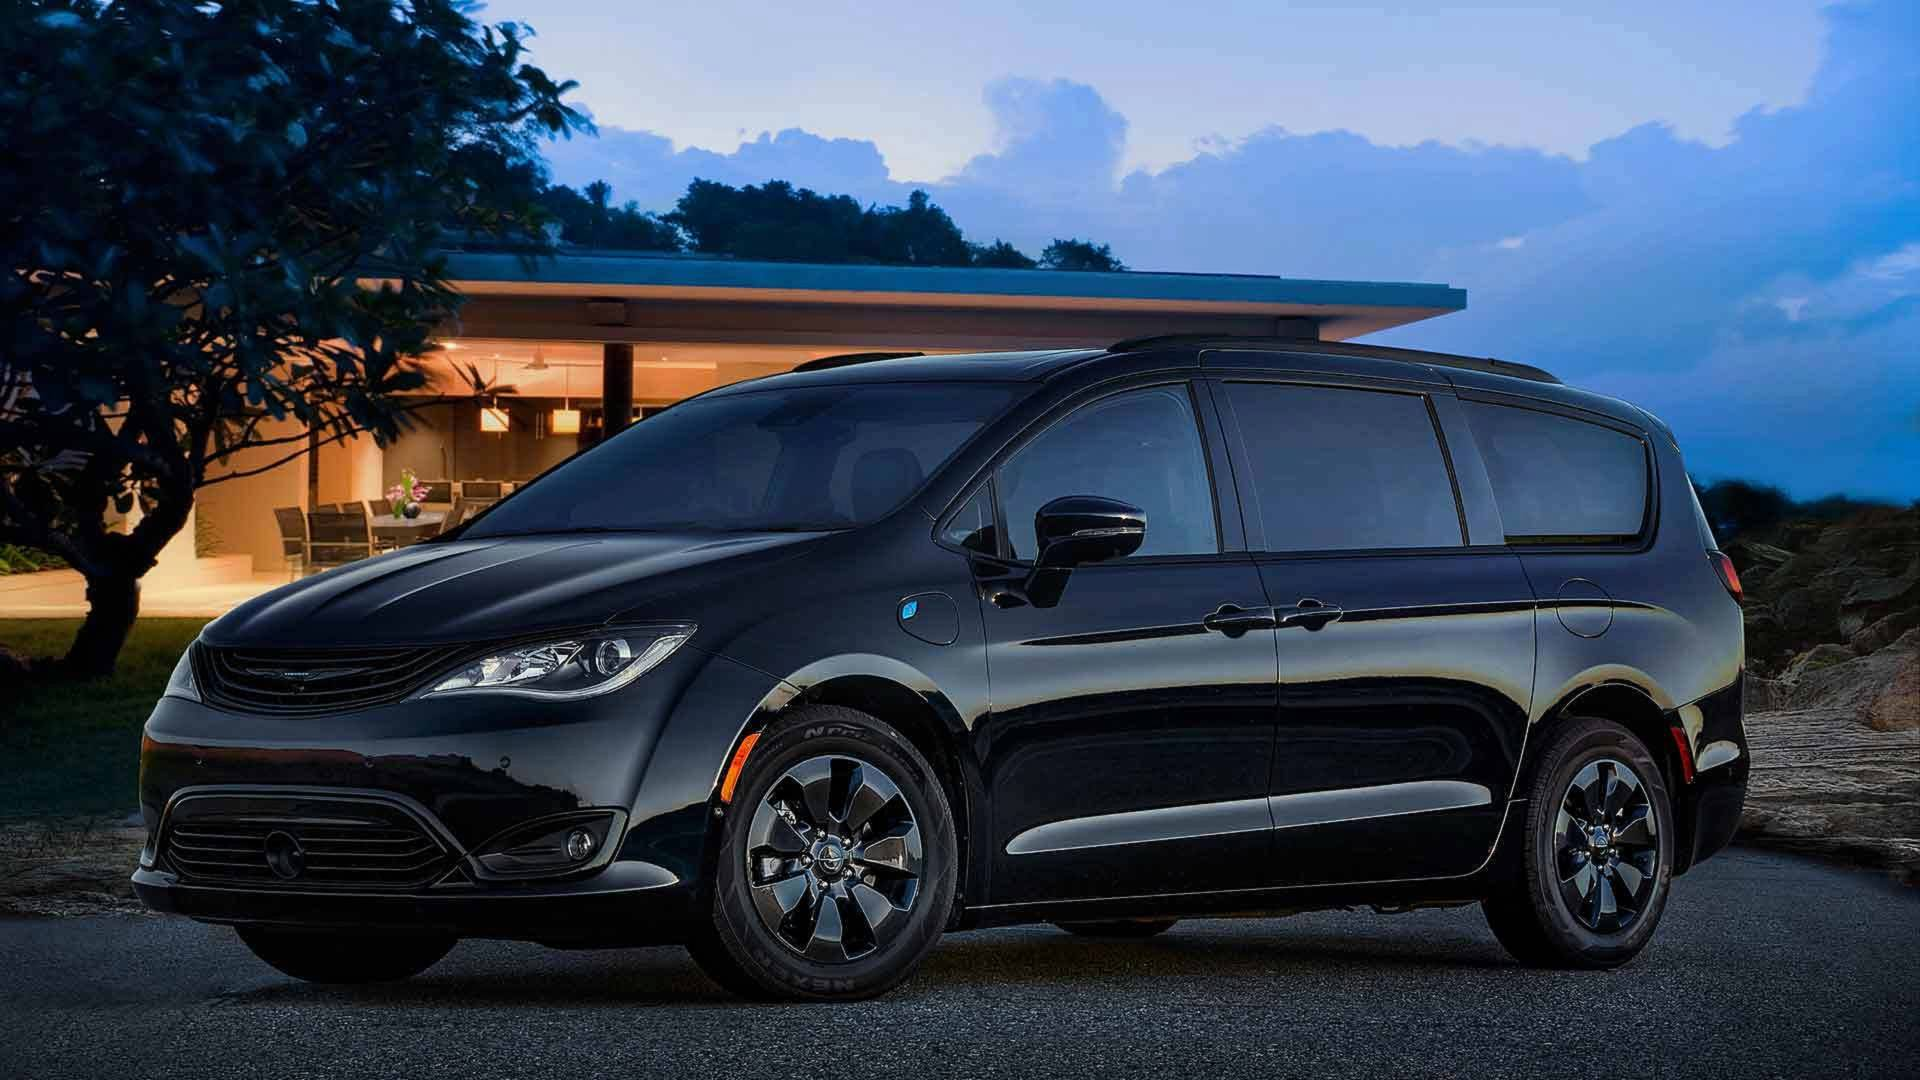 Ongekend 2019 Chrysler Pacifica Hybrid Gets Blacked-Out Trim Package JL-27